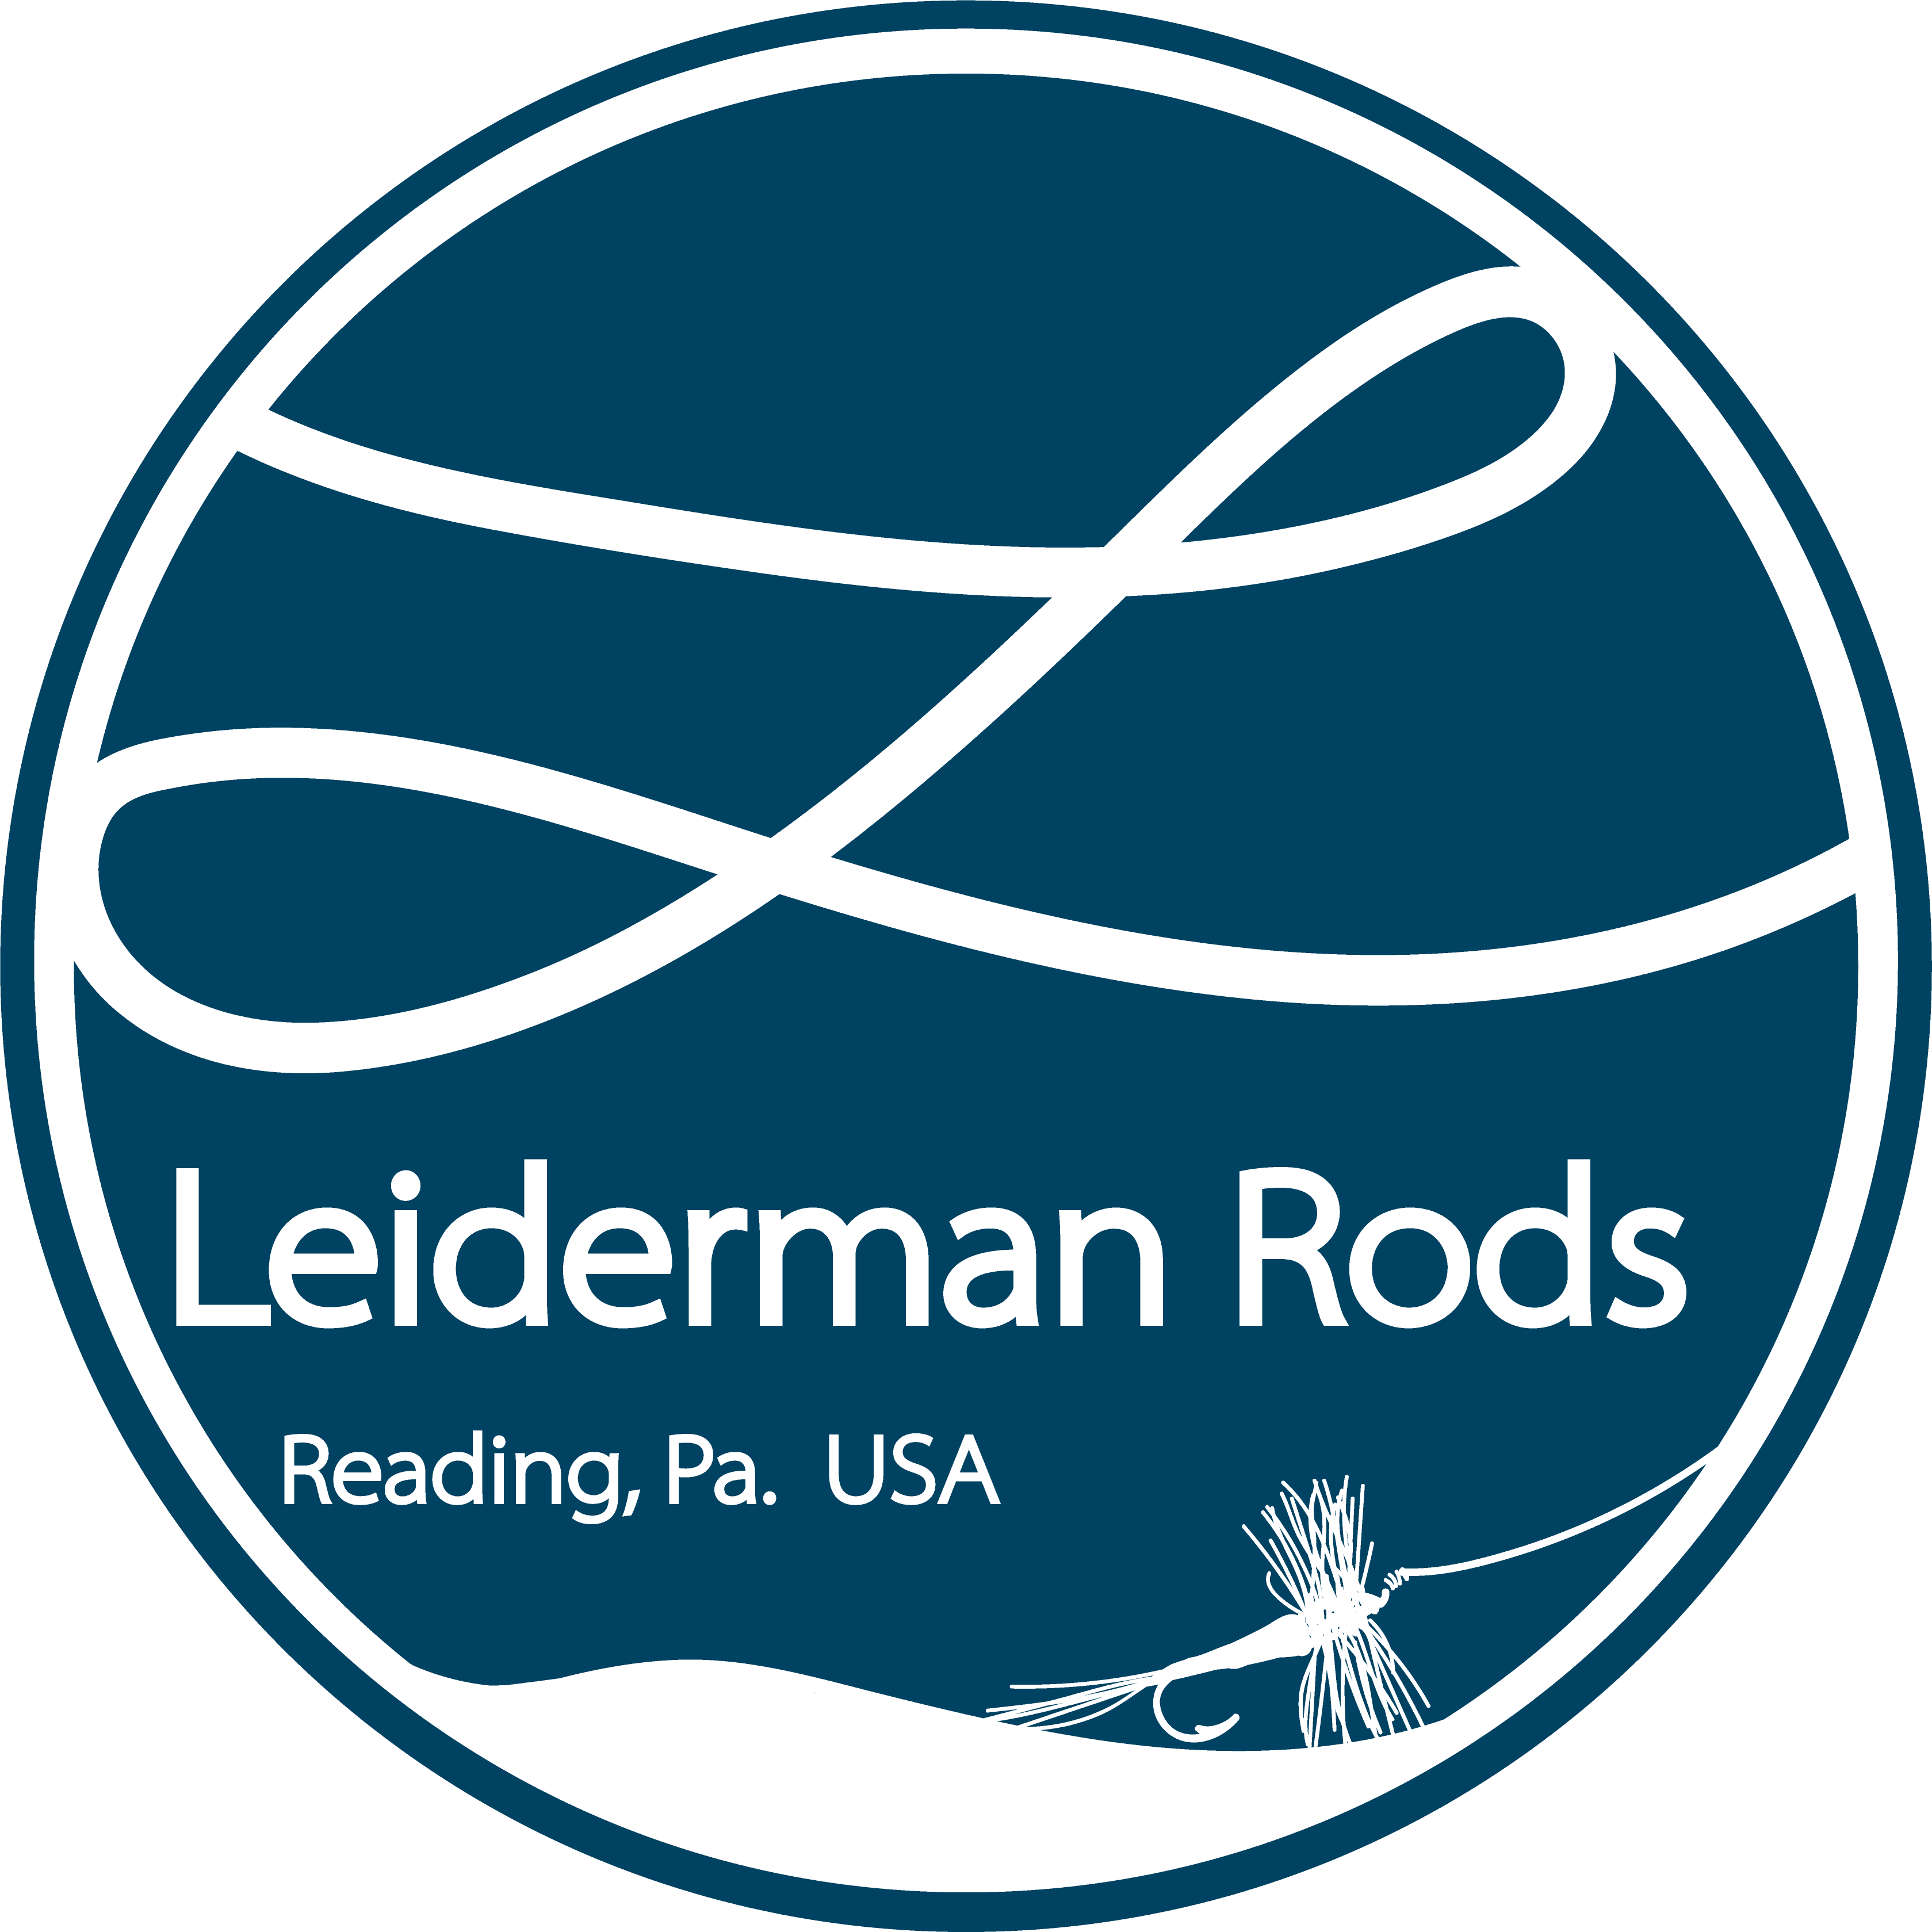 Leiderman Rods